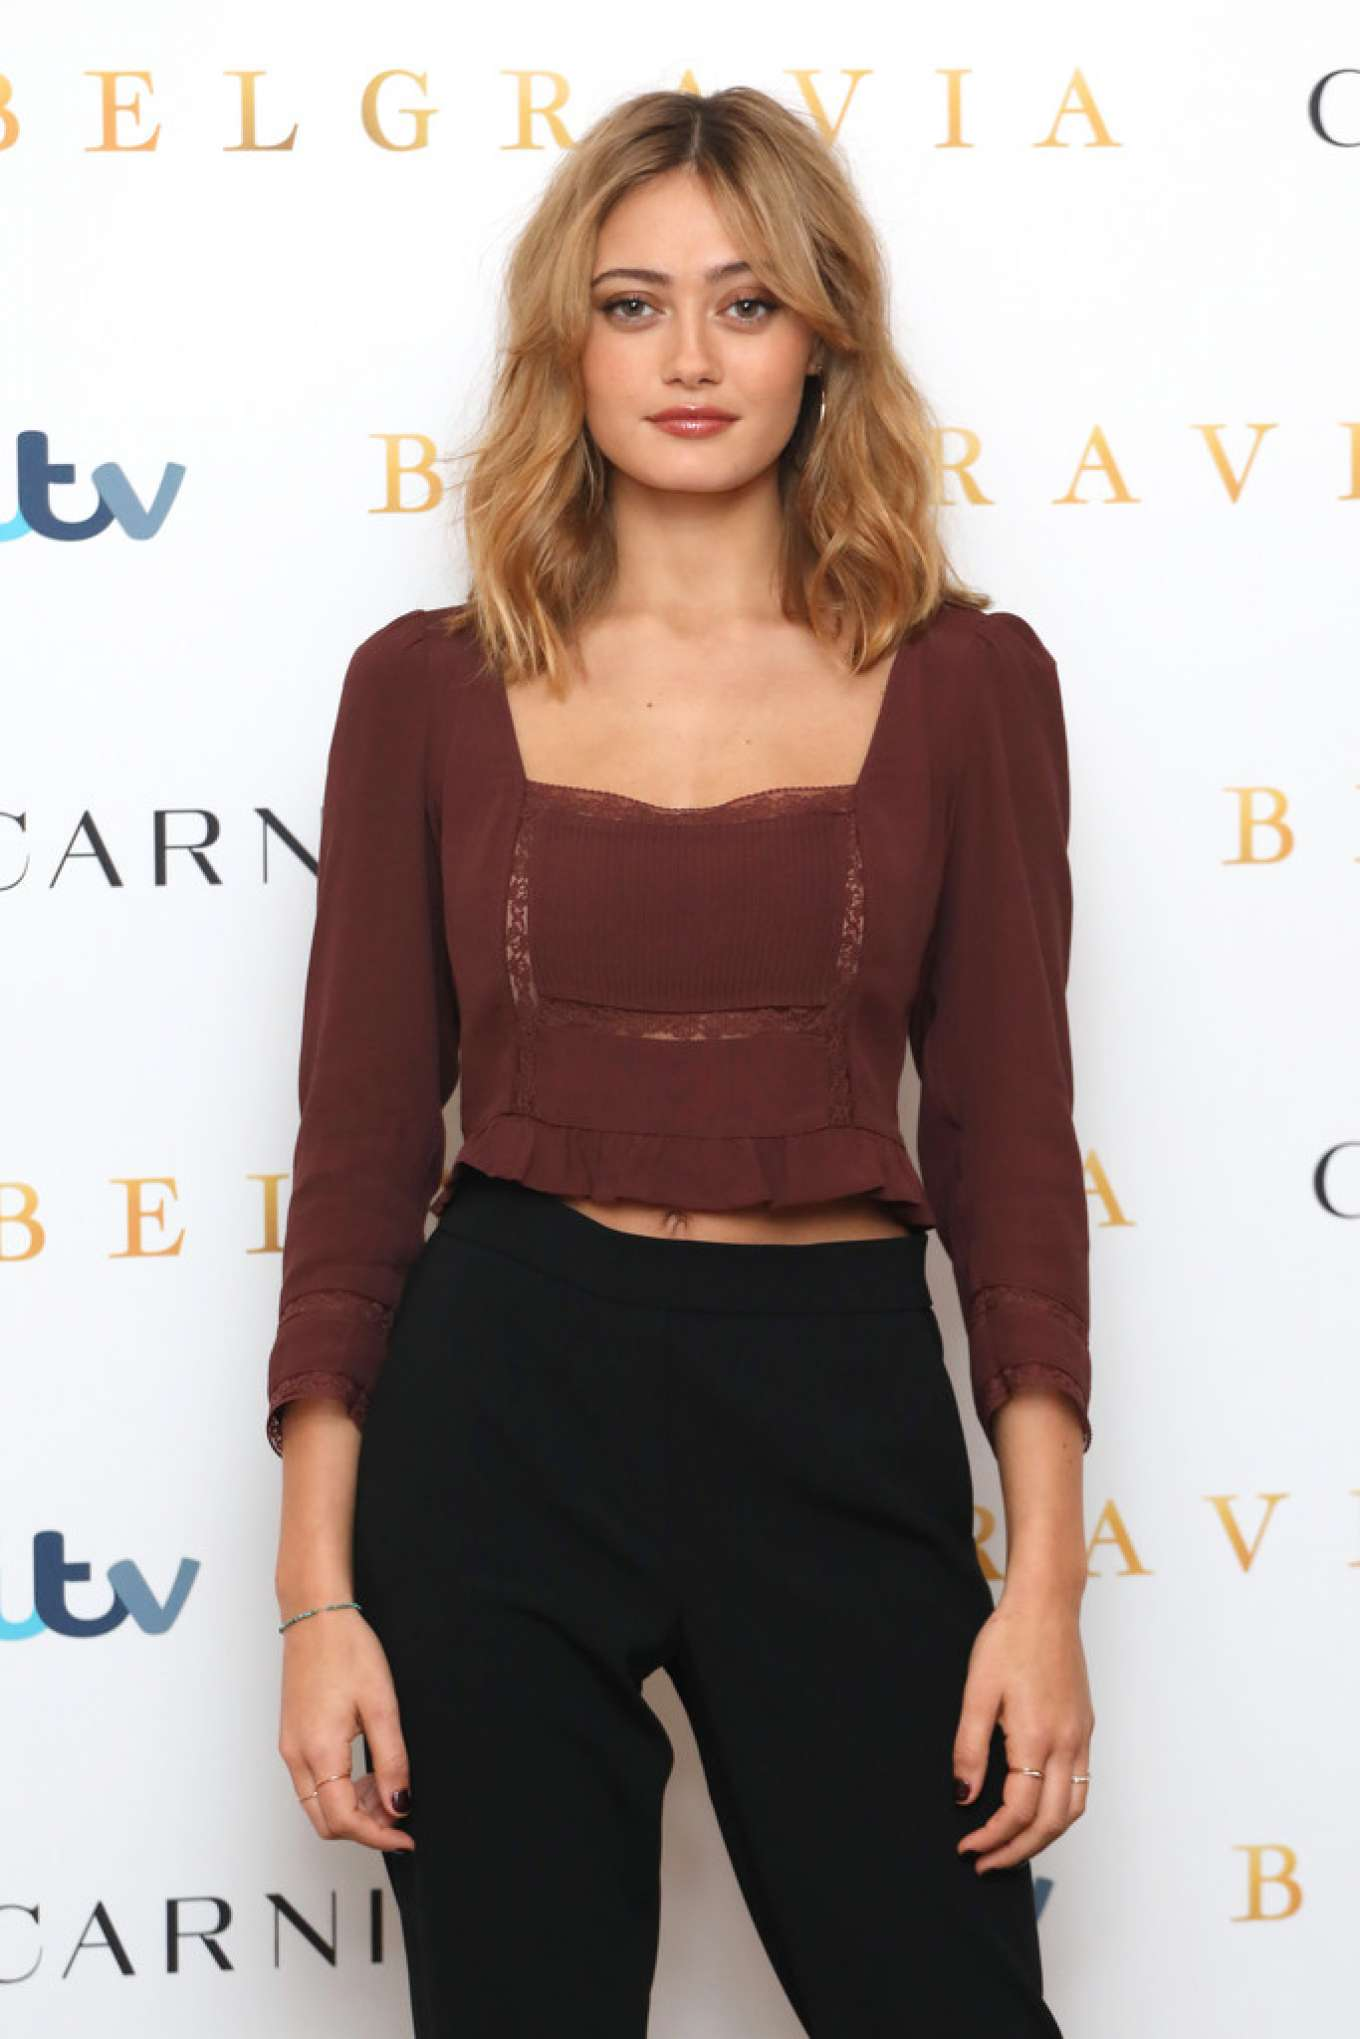 Ella Purnell - Belgravia photocall in London